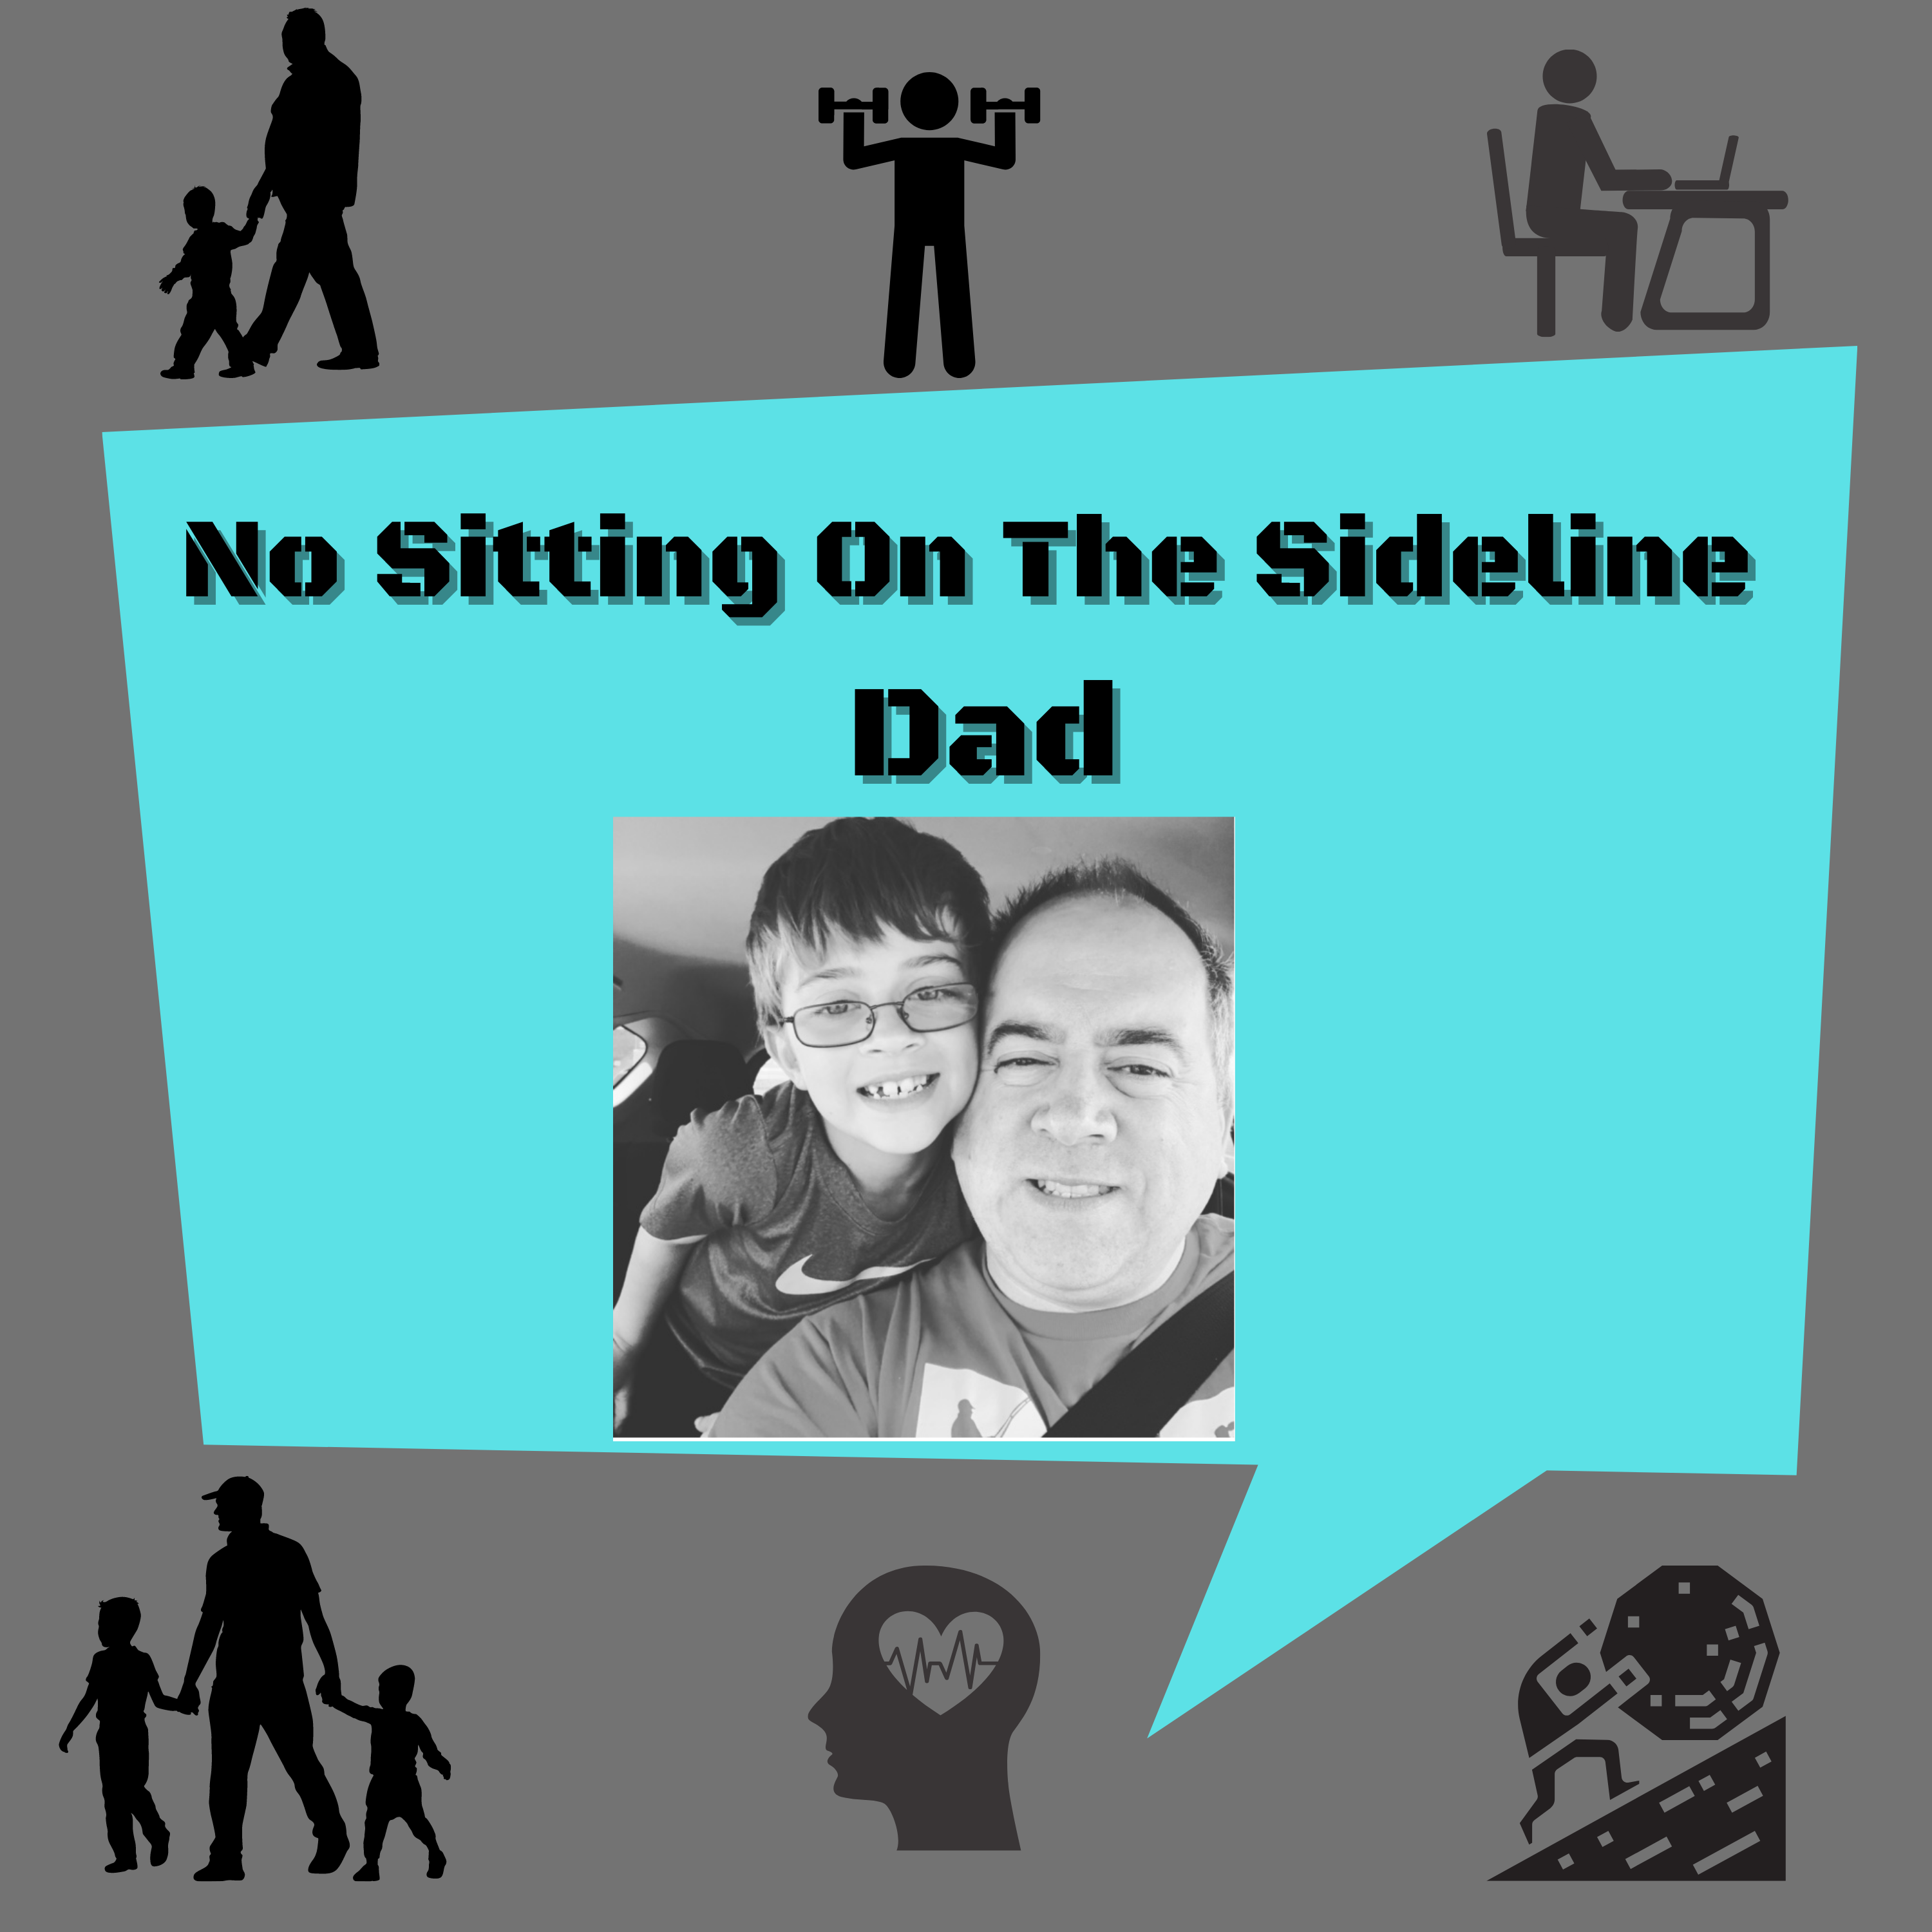 No sitting on the sideline dad